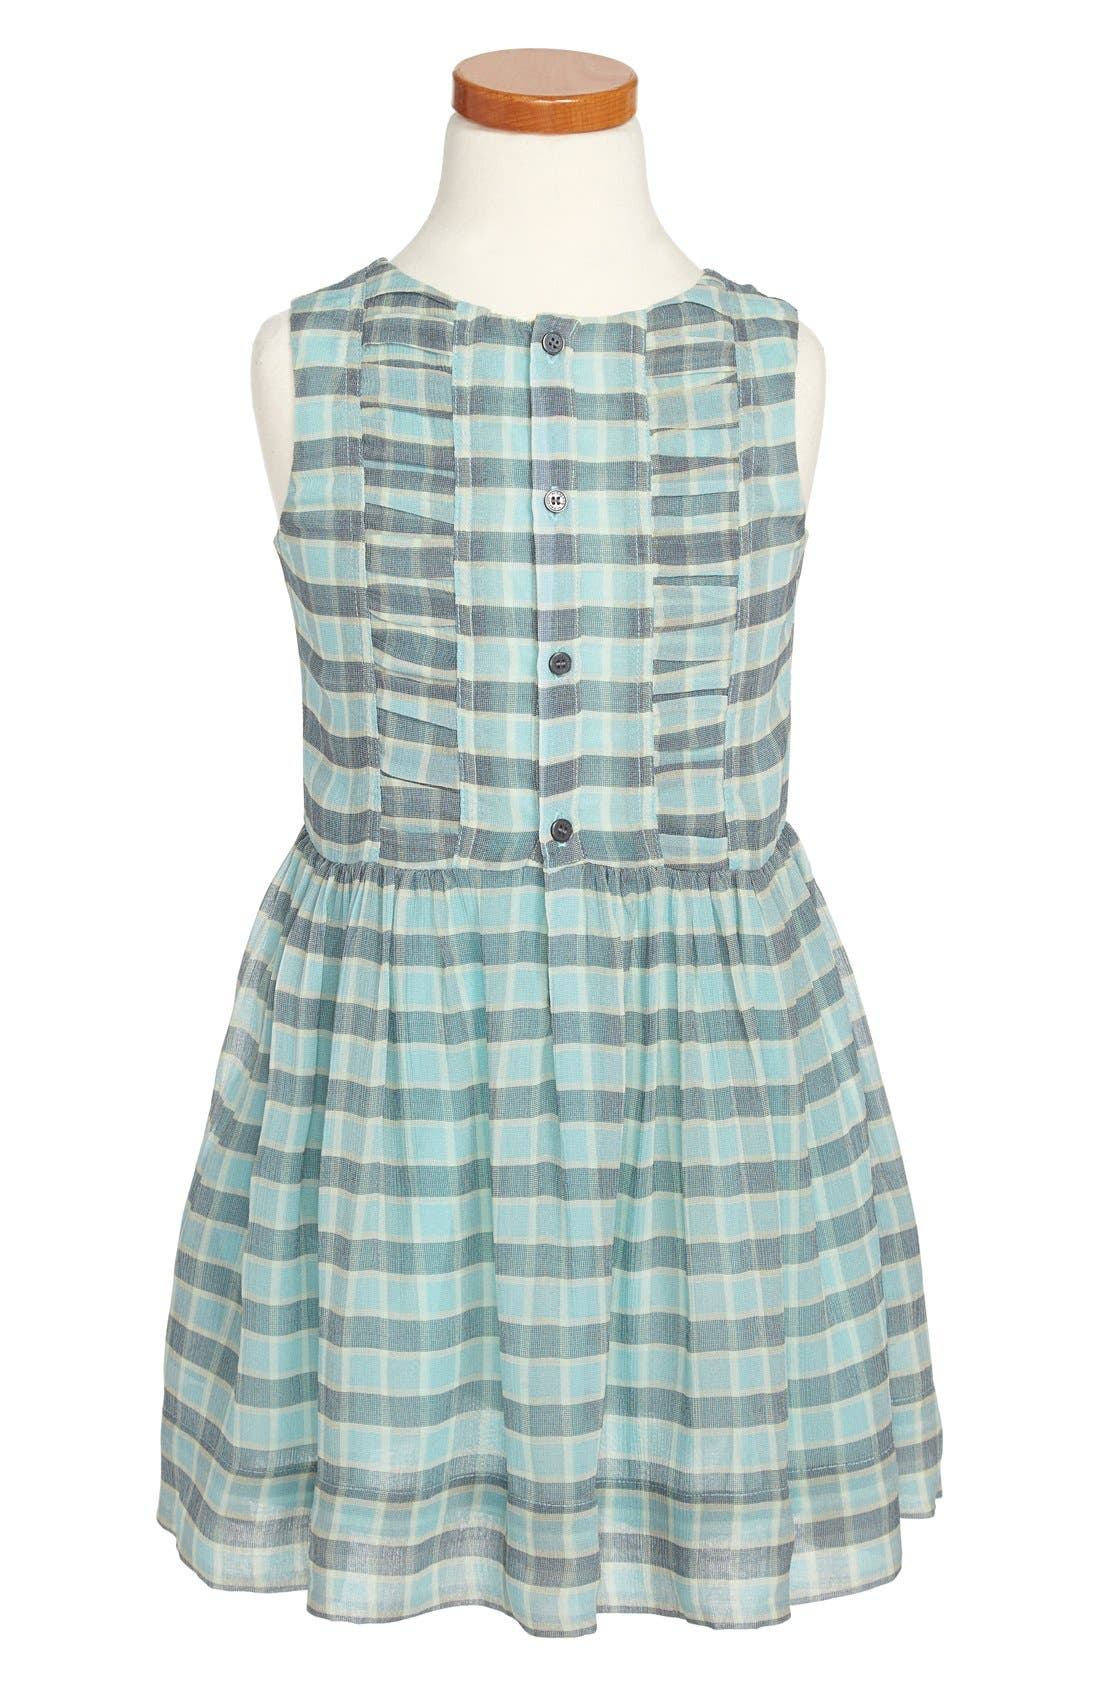 Main Image - Burberry Ruched Silk Dress (Little Girls & Big Girls)